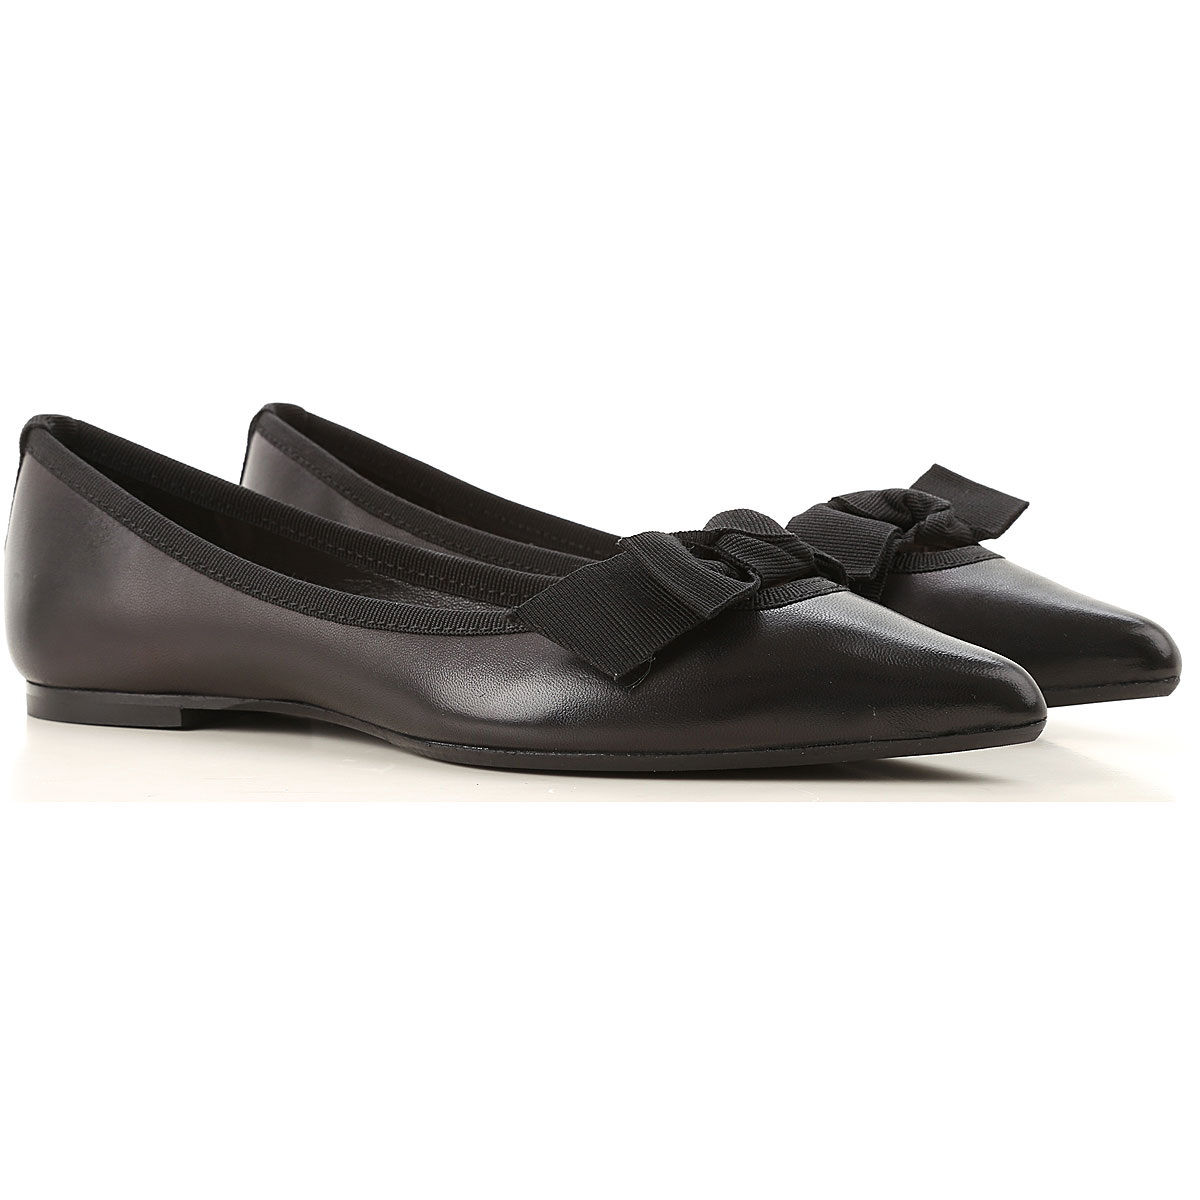 Anna Baiguera Ballet Flats Ballerina Shoes for Women On Sale, Black, Leather, 2019, 10 11 6 7 8 9